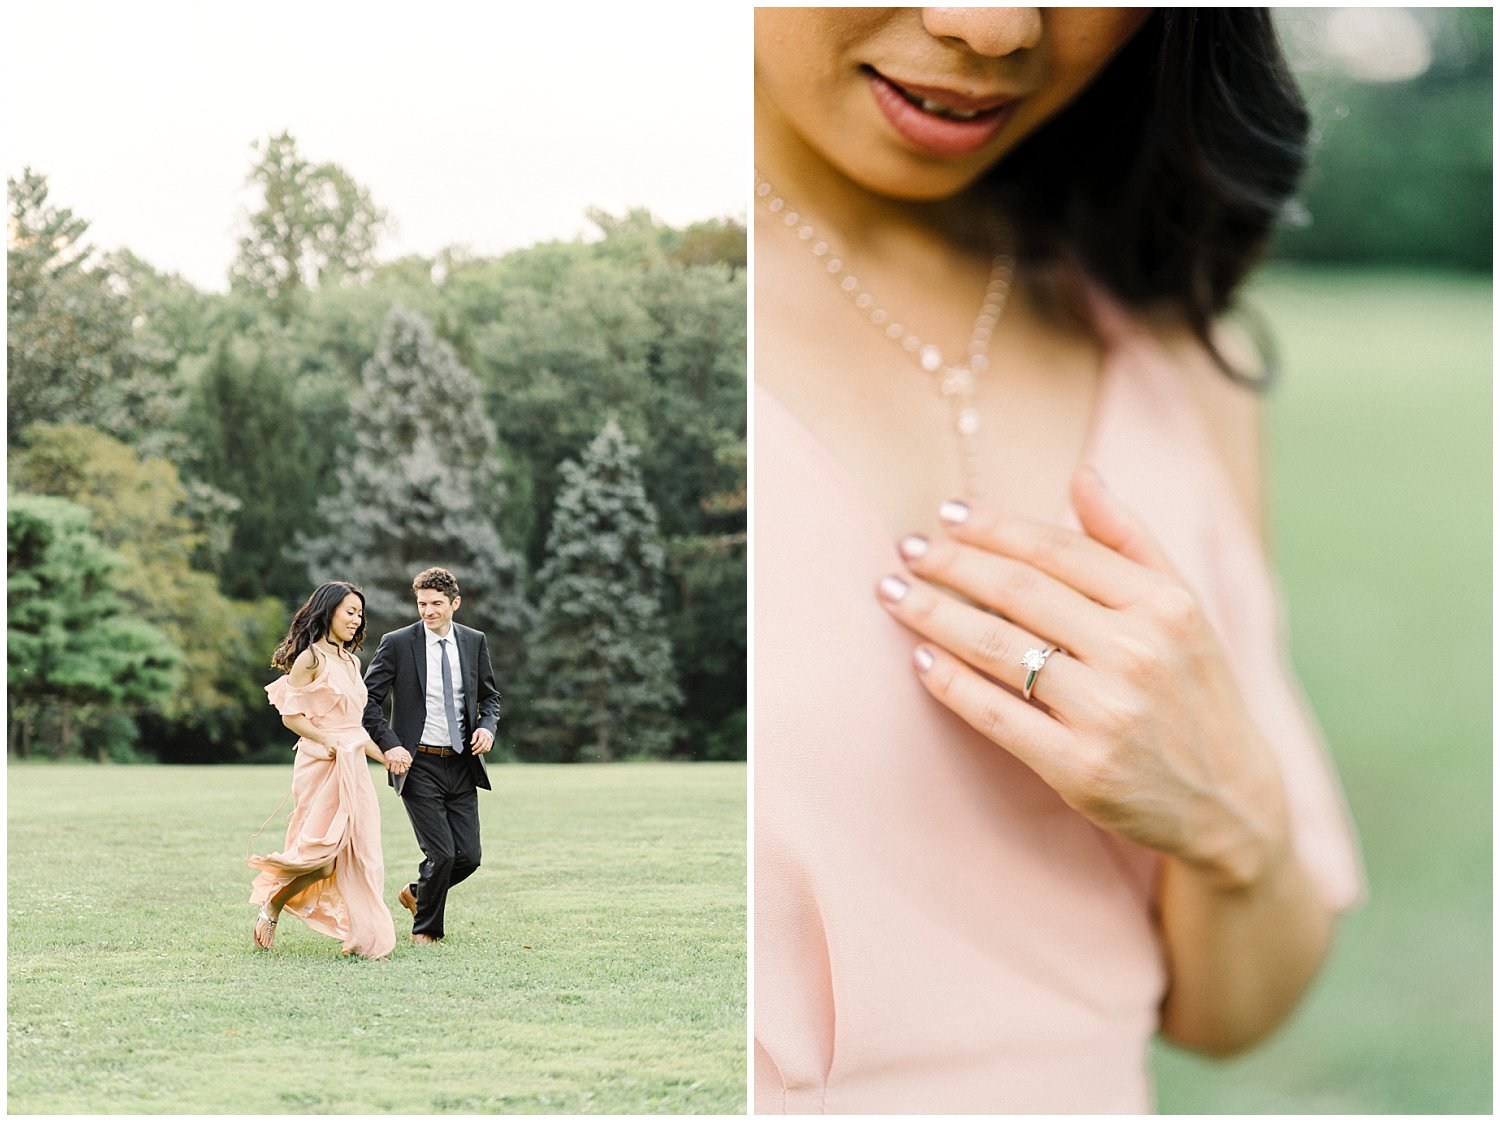 Cylburn Arboretum Engagement Session in Baltimore with Samoyed Puppy